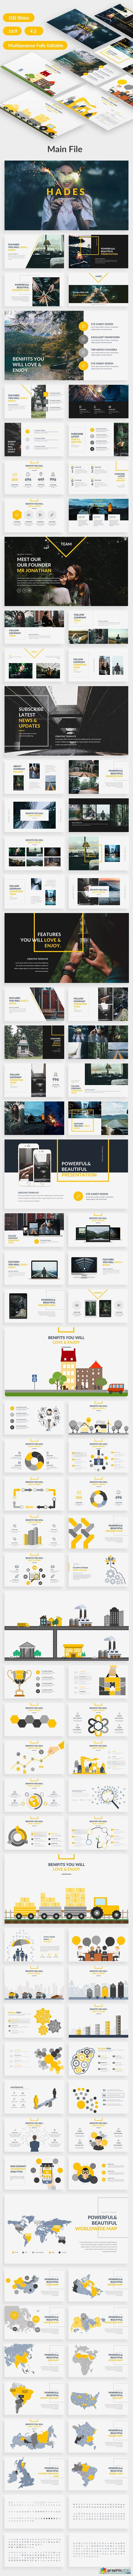 Hades Creative Powerpoint Template